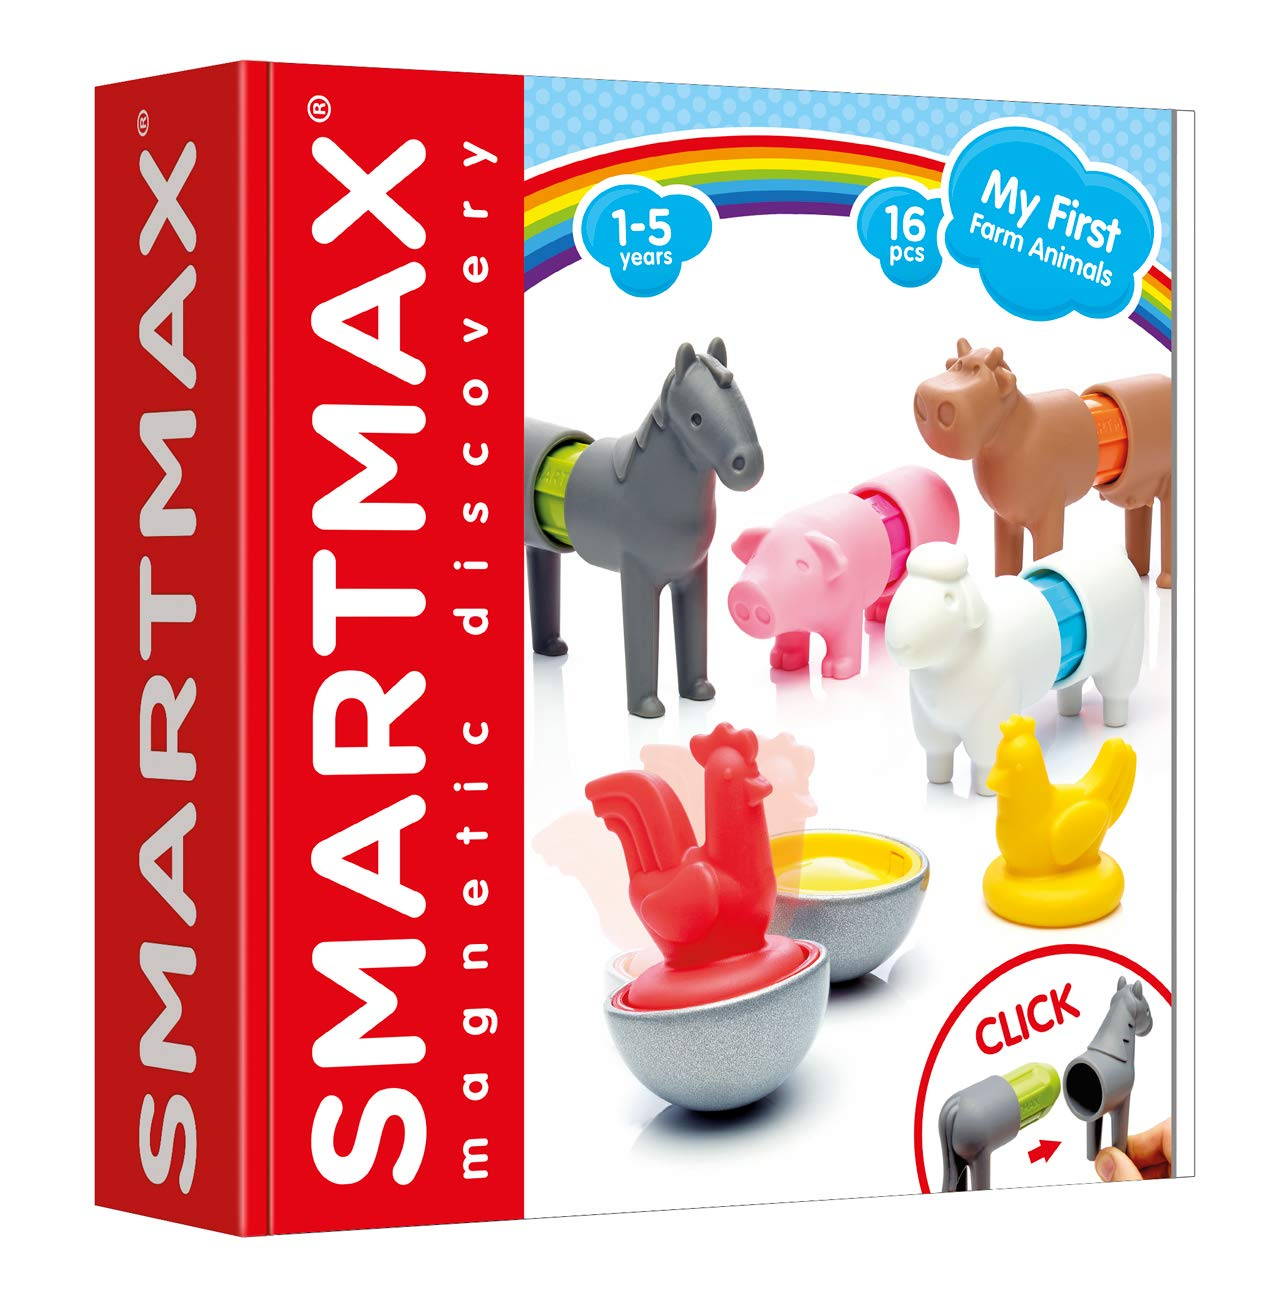 SMART Toys and Games GmbH SMX 221 Smartmax My First Farm Animals 16 pi/èces Multicolore